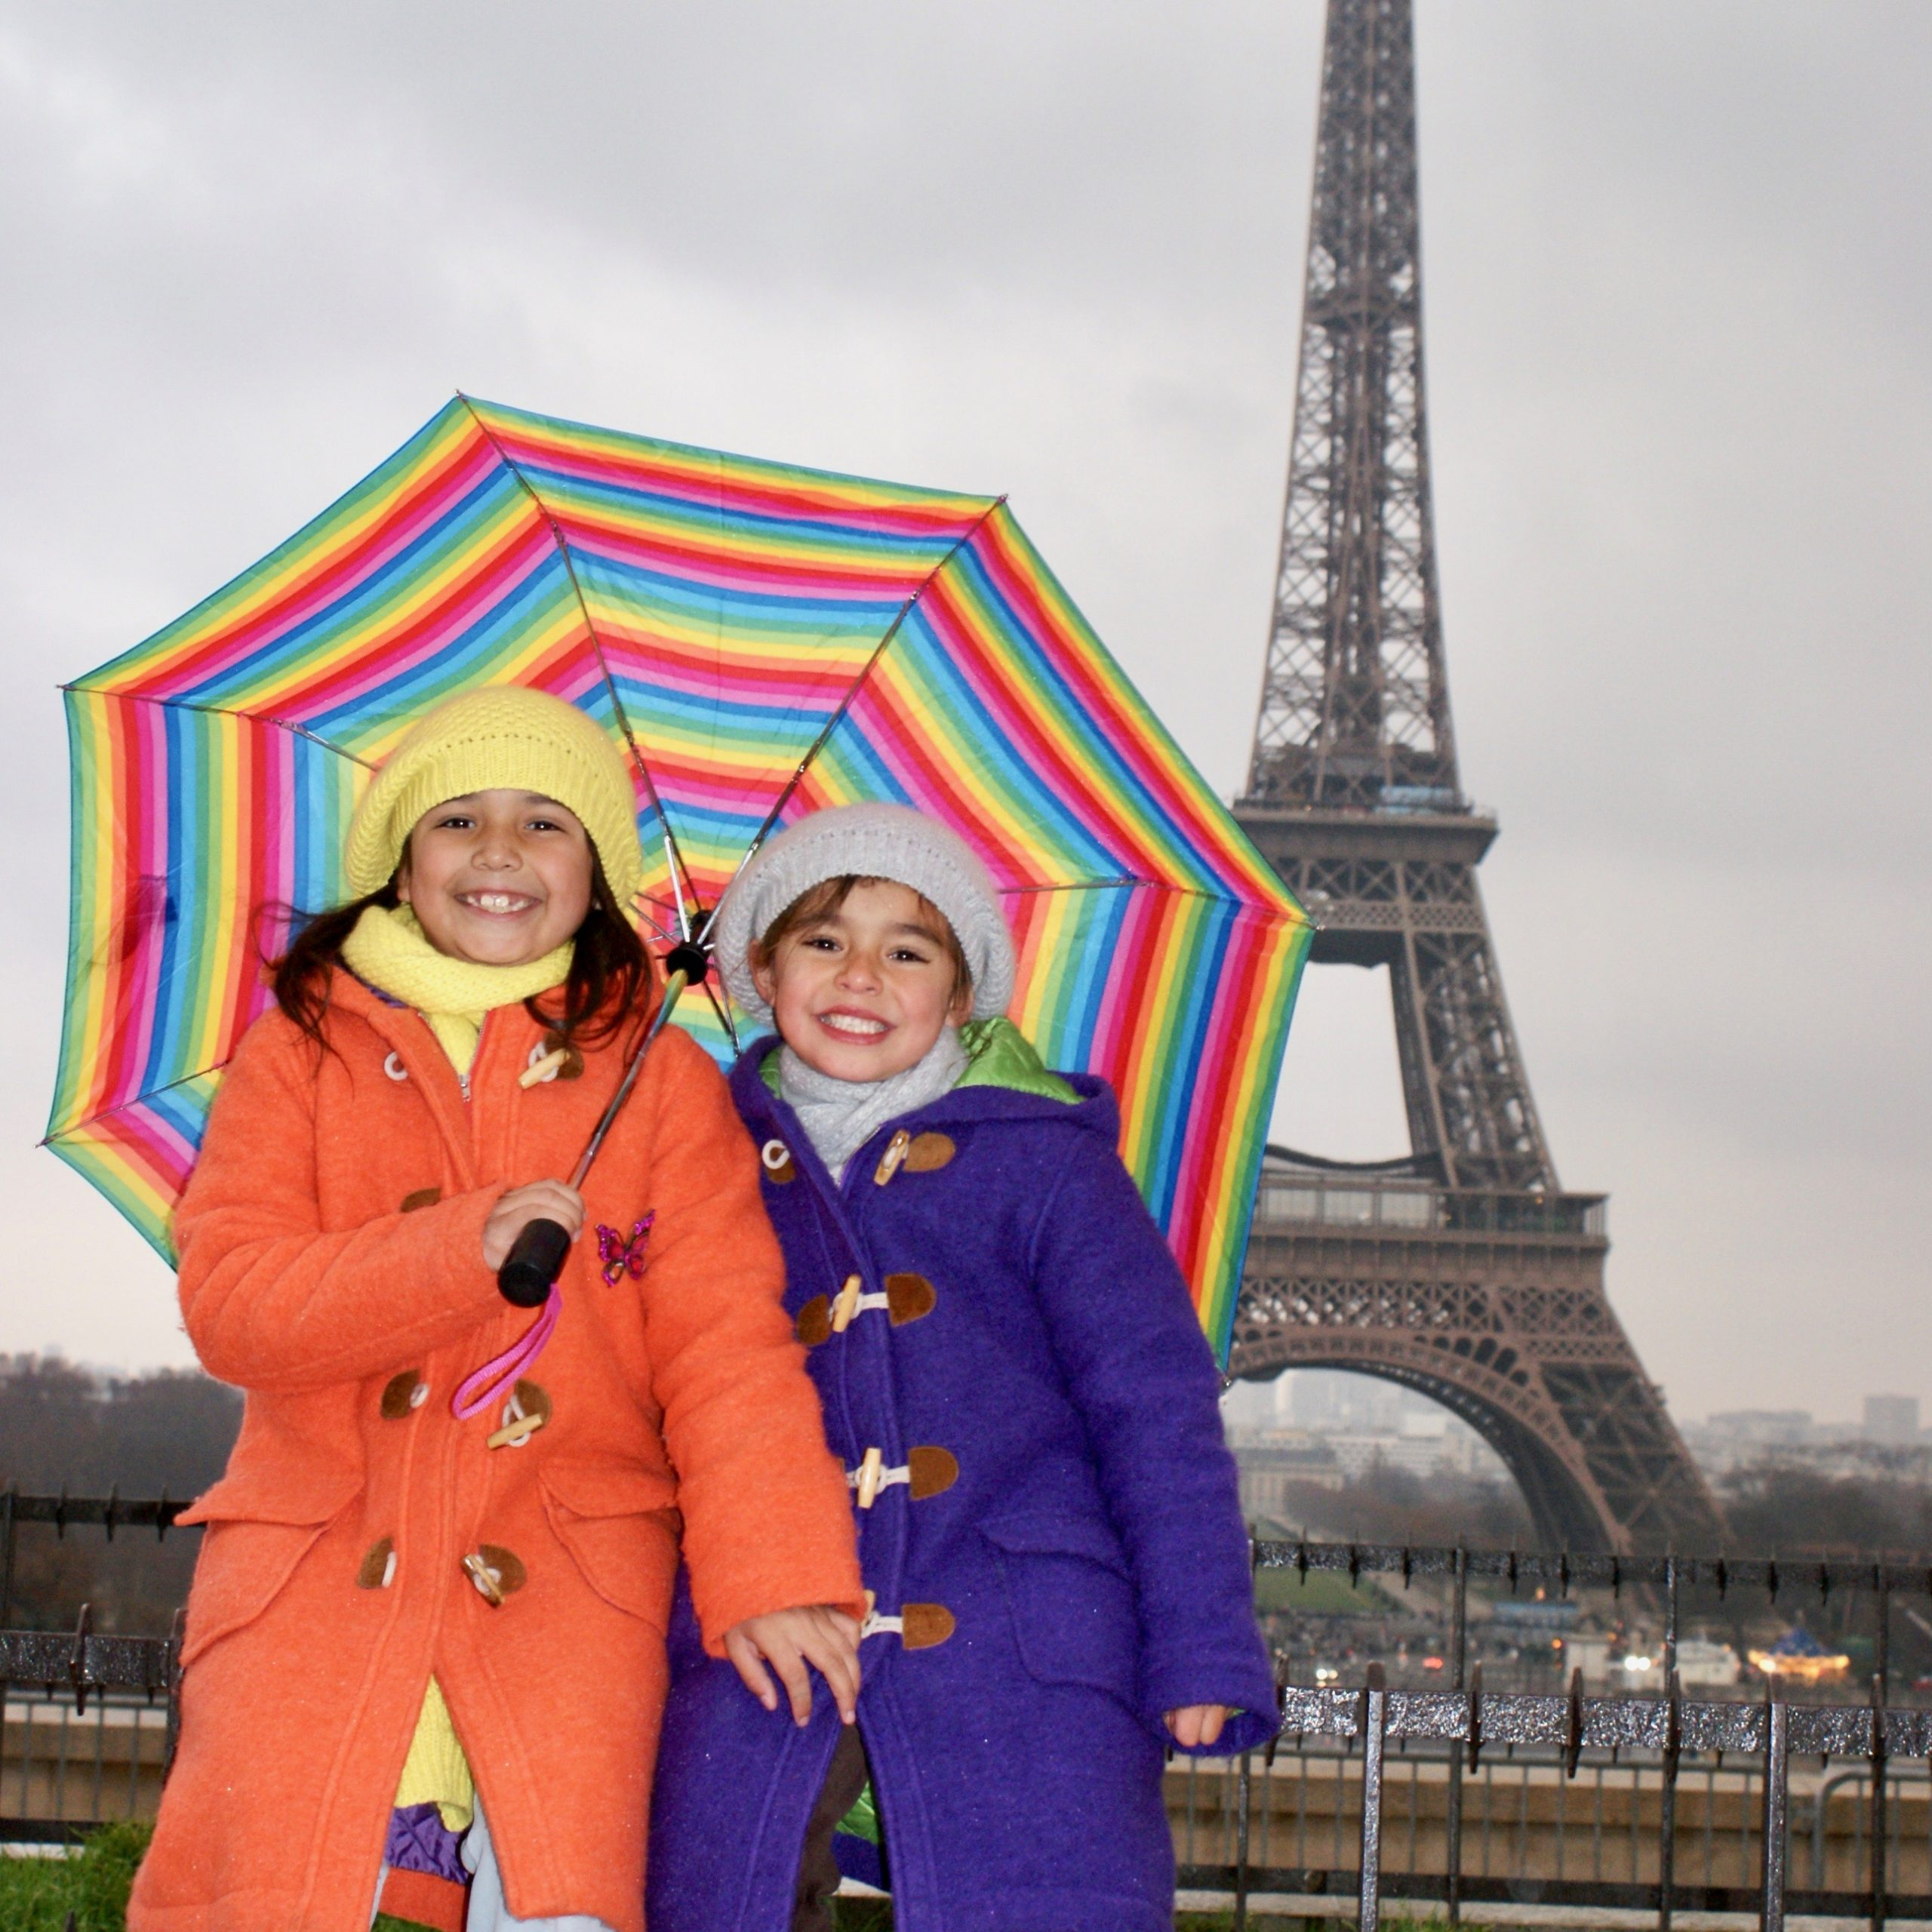 Two young girls hold a rainbow umbrella with the Eiffel Tower in the background, Paris, France